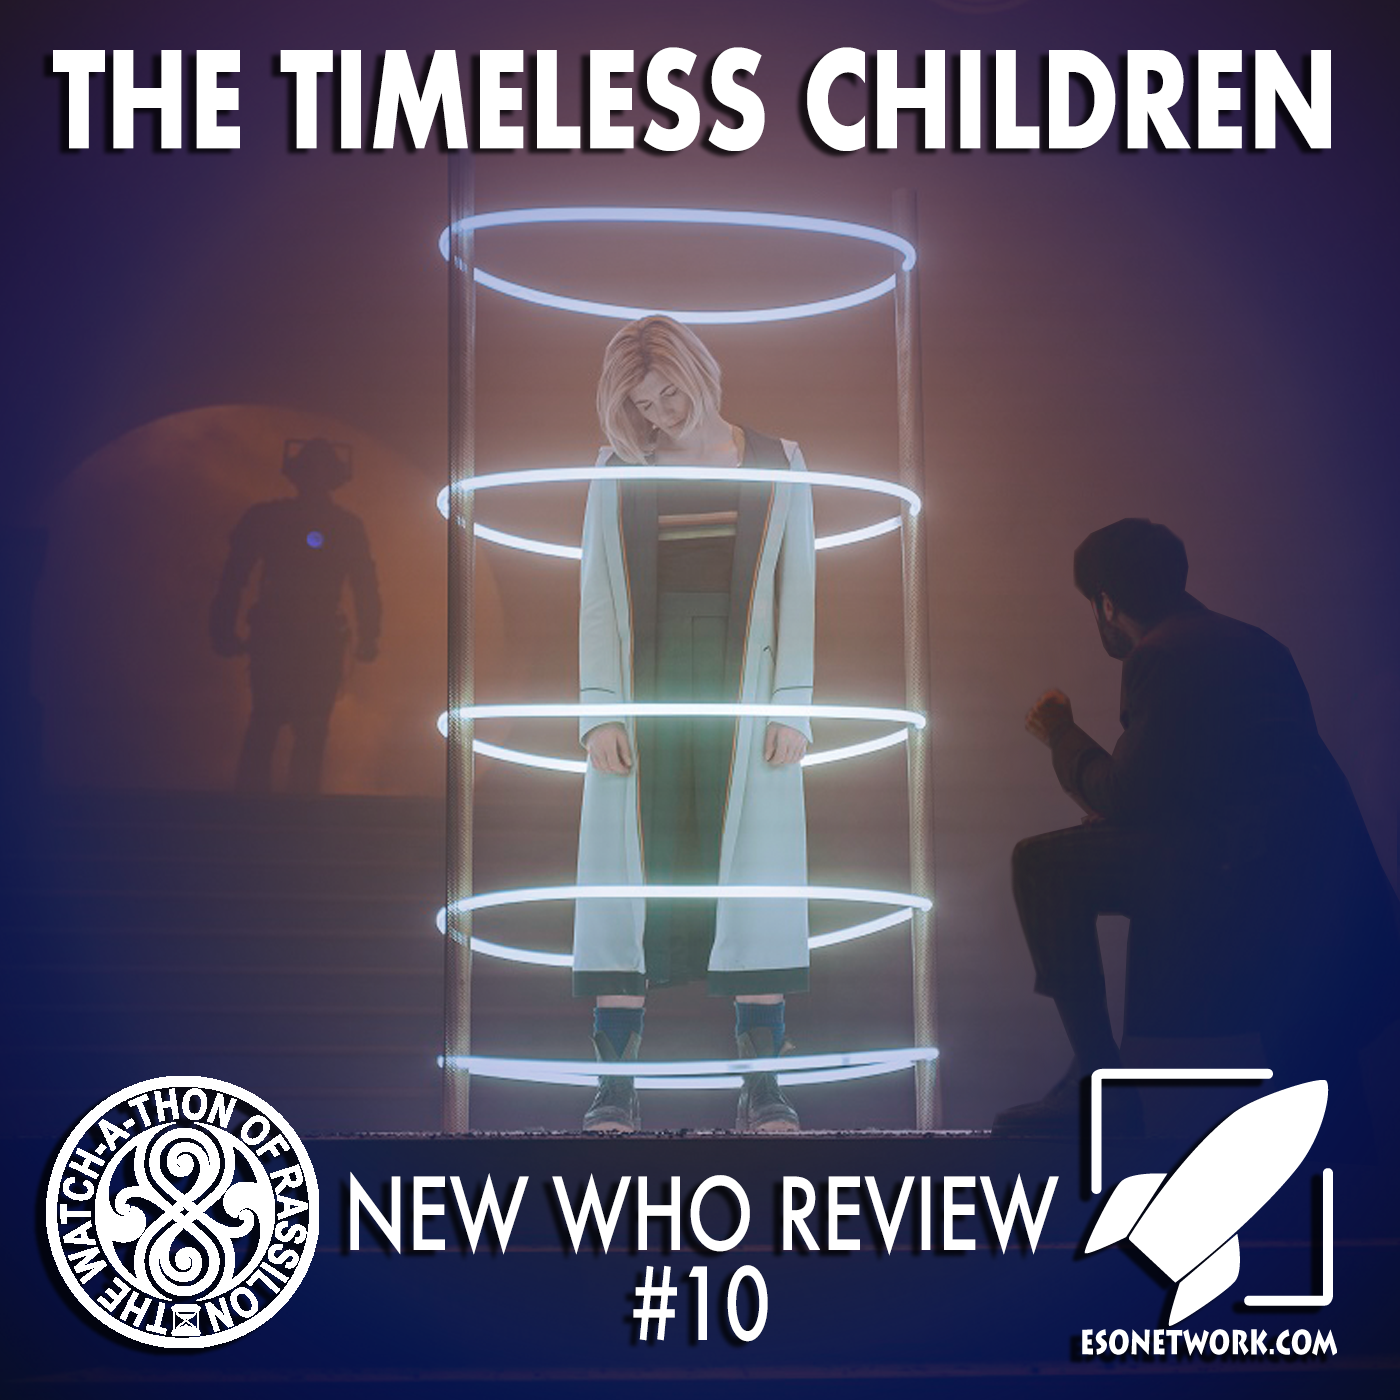 WATOR New Who Review 10